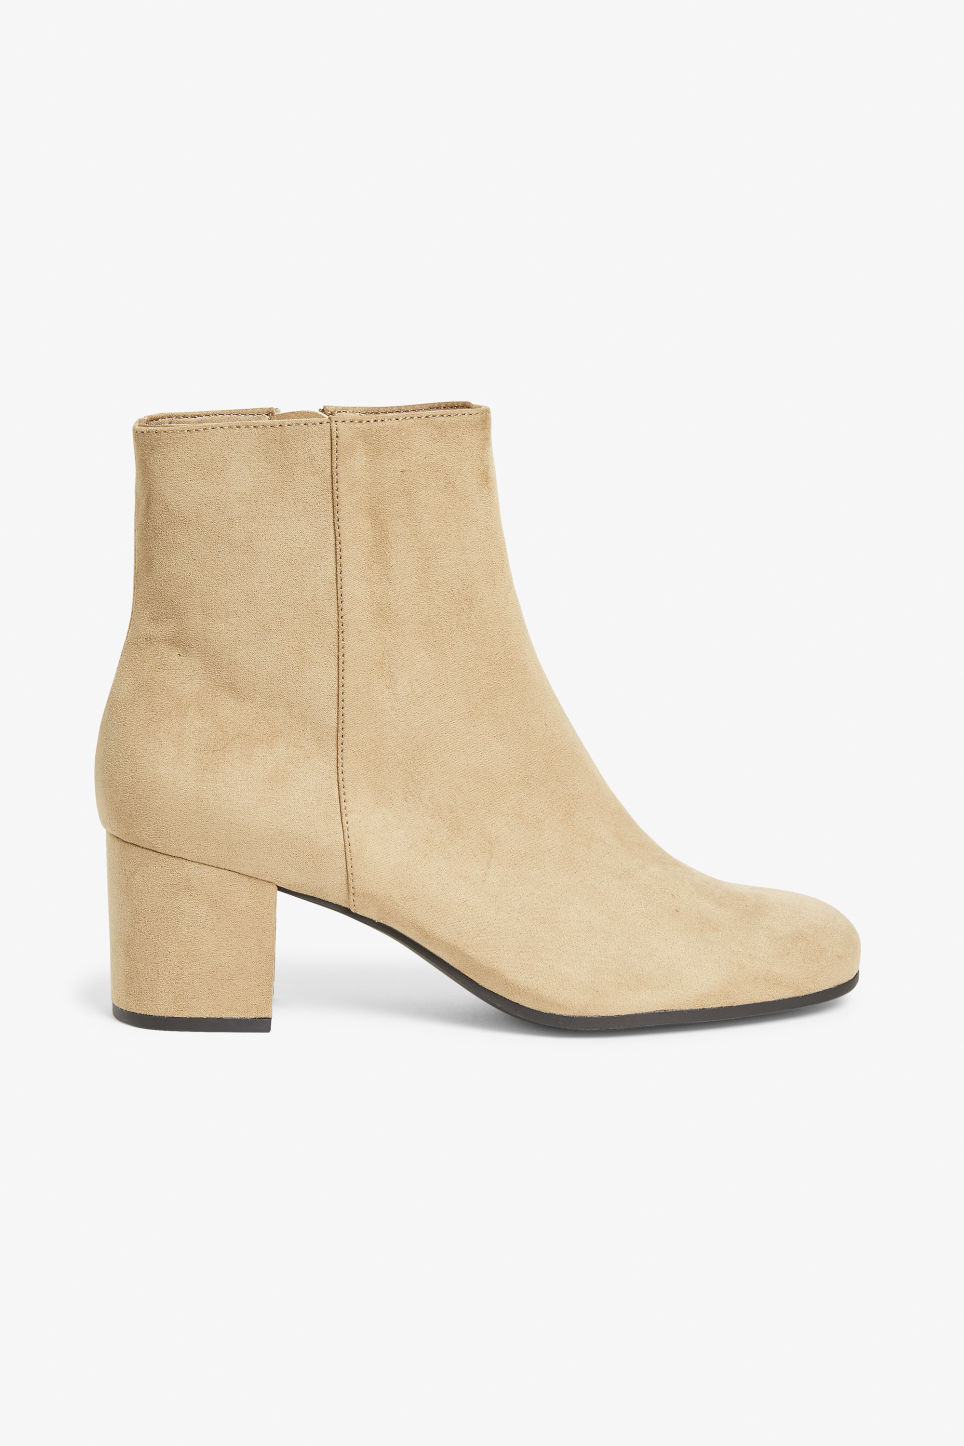 Detailed image of Monki classic ankle boots in beige